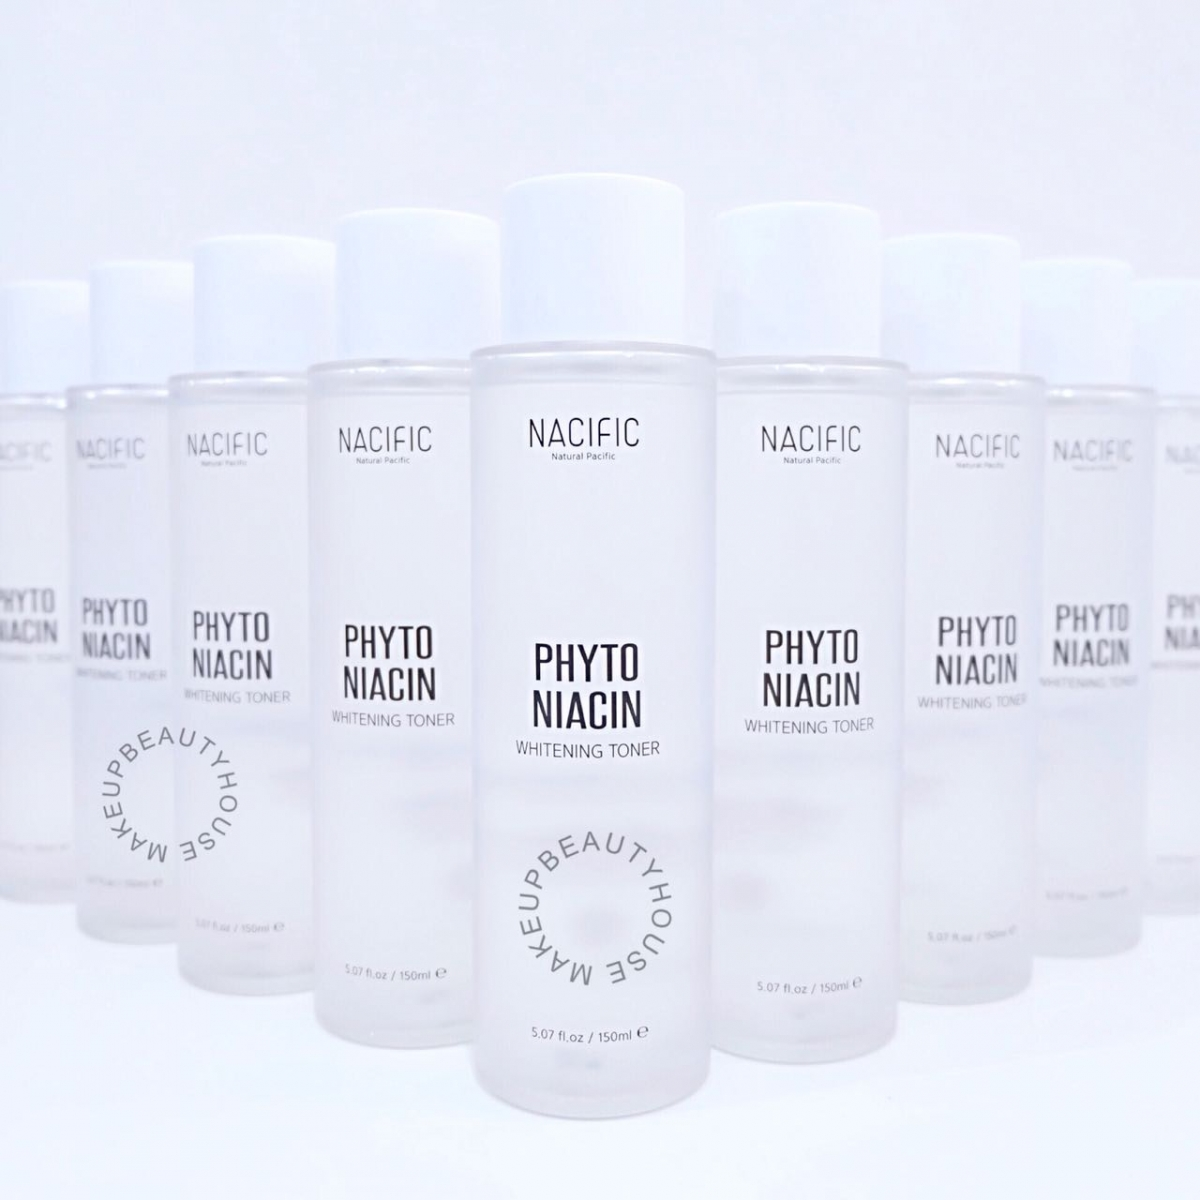 NACIFIC (Natural Pacific). Phyto Niacin Whitening Toner